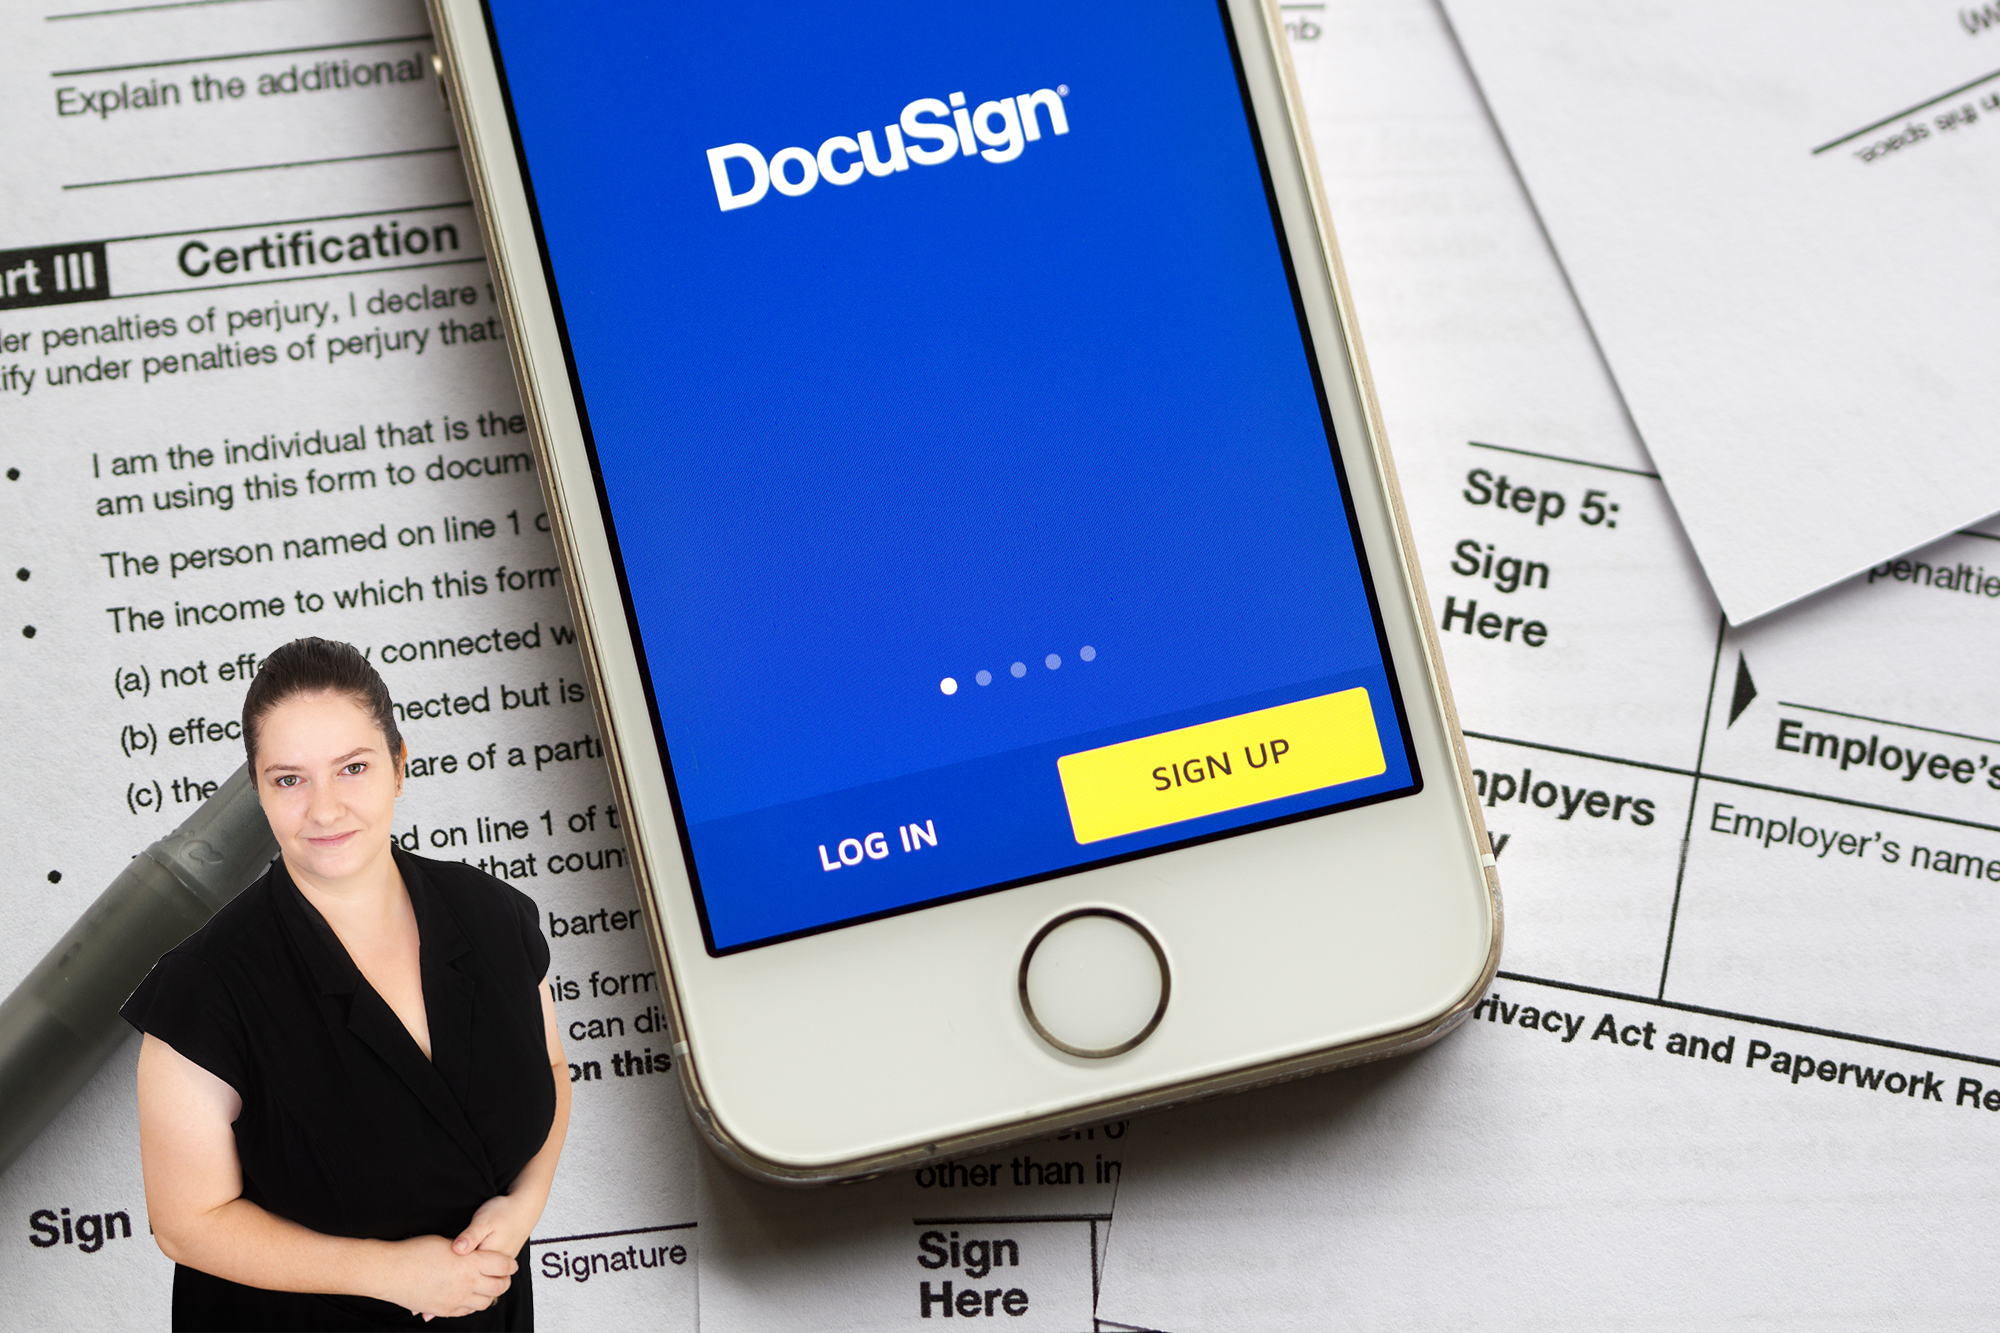 HOW POWERFUL IS YOUR DIGITAL SIGNATURE?